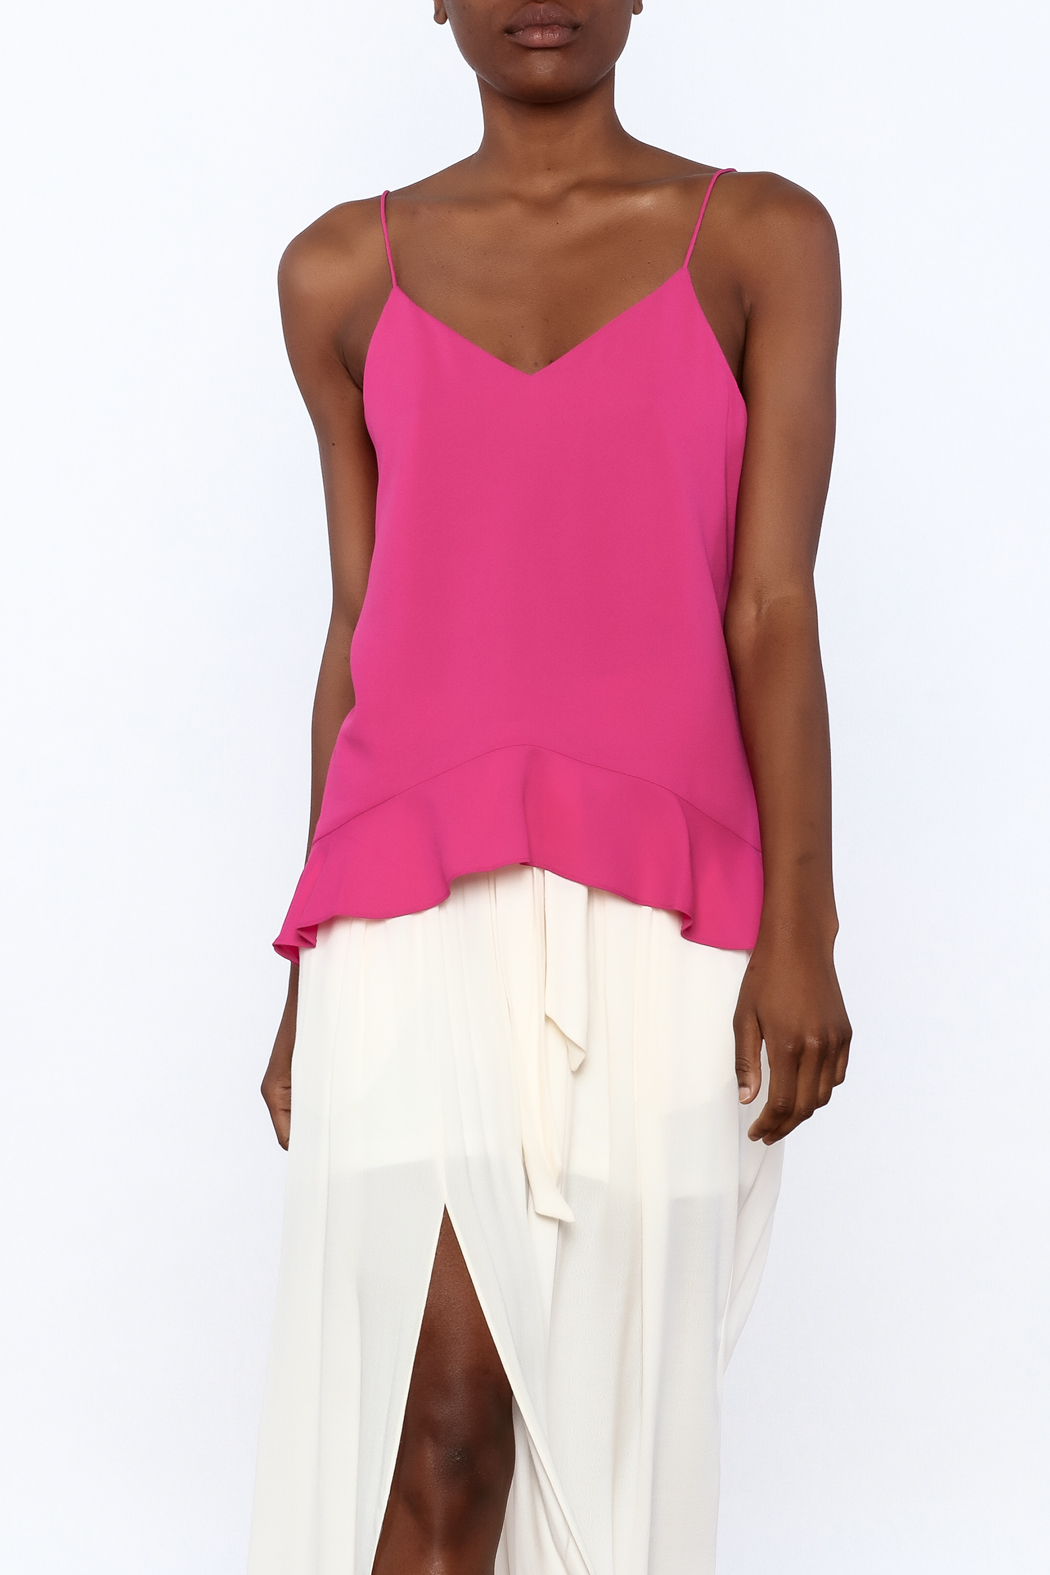 Cooper & Ella Hot Pink Sleeveless Top - Front Cropped Image